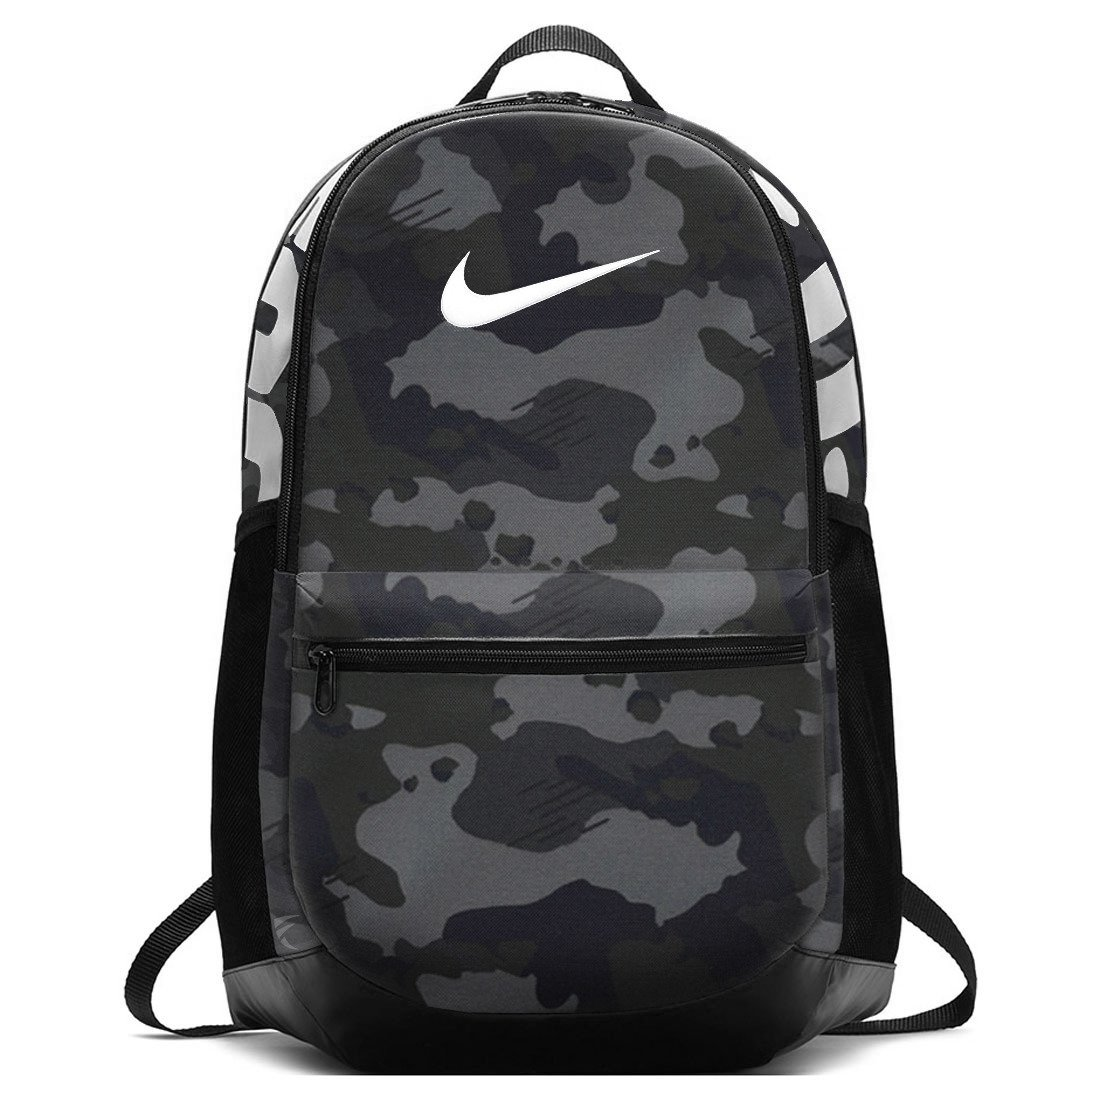 355d4c34be201 ... Plecak Nike Brasilia Training Backpack BA5973-021 ...